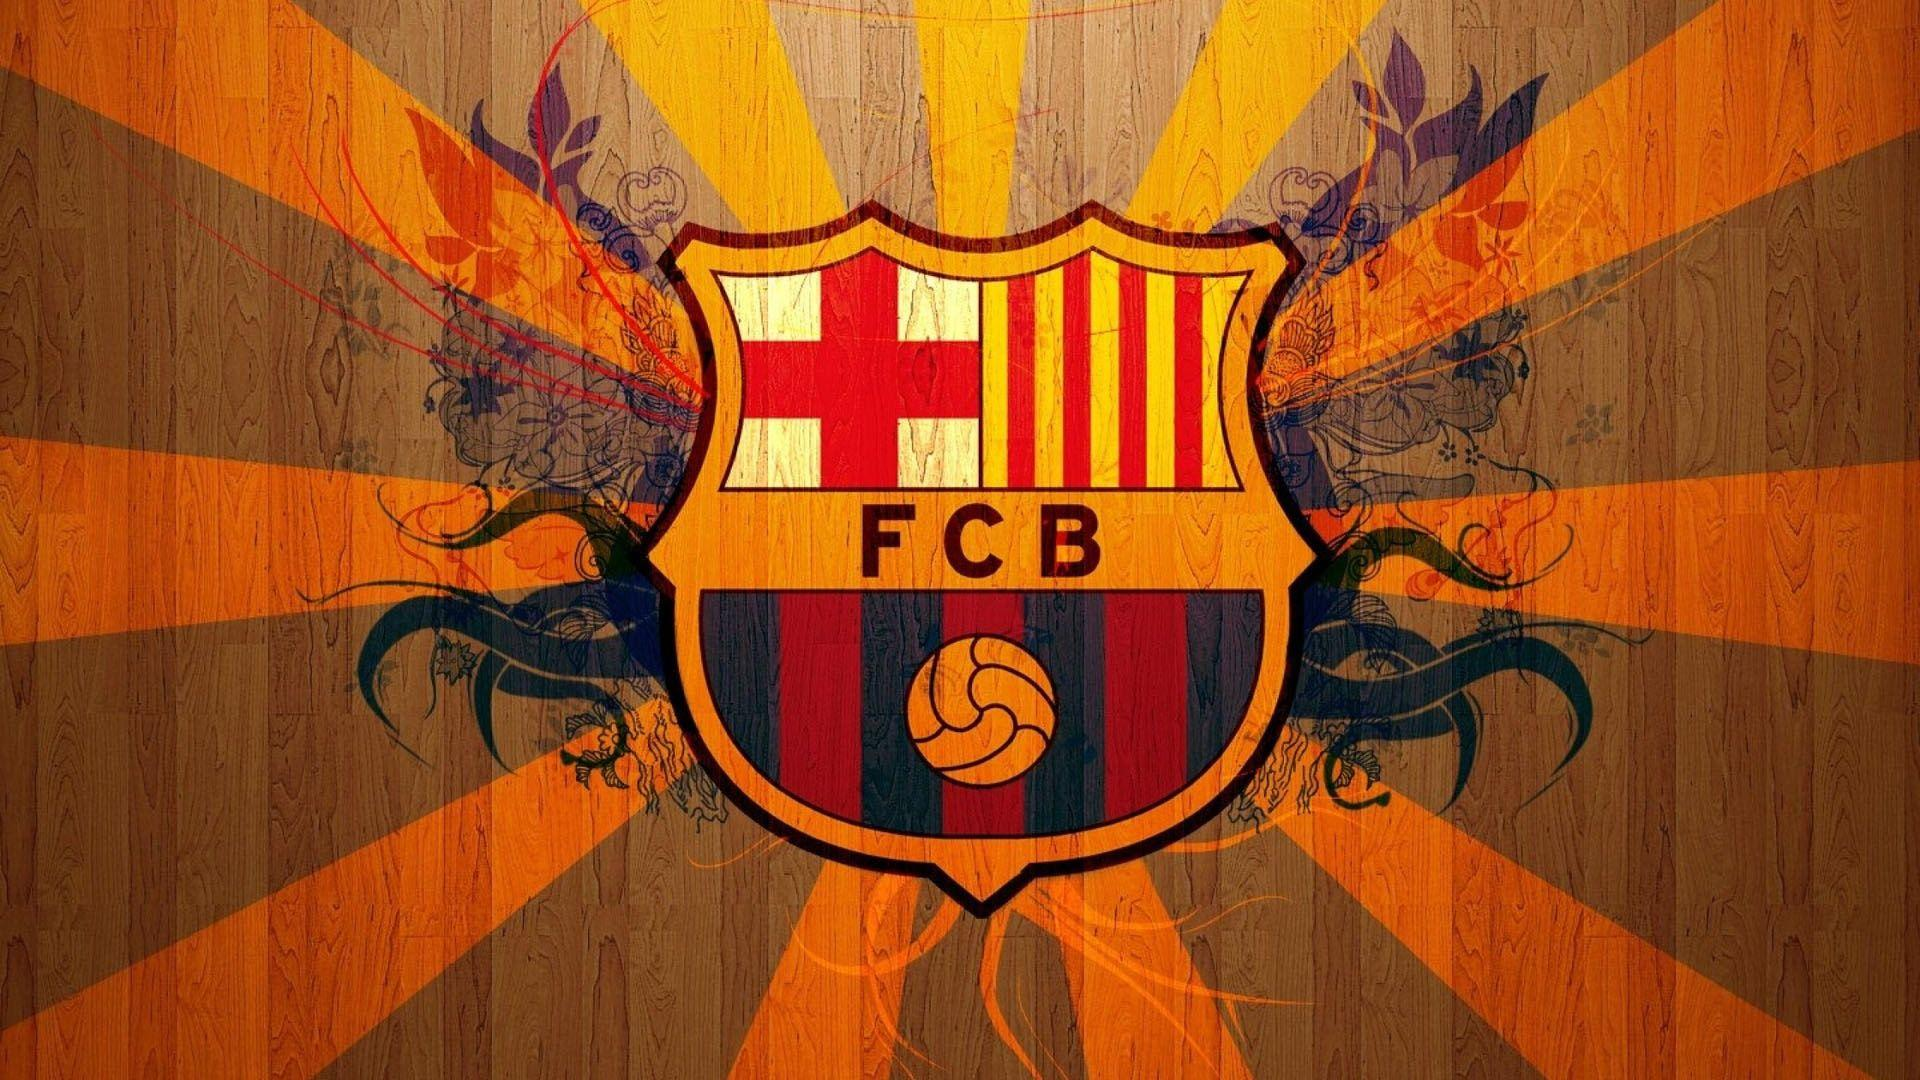 FC Barcelona Live Images, HD Wallpapers - SH.VM Wallpapers